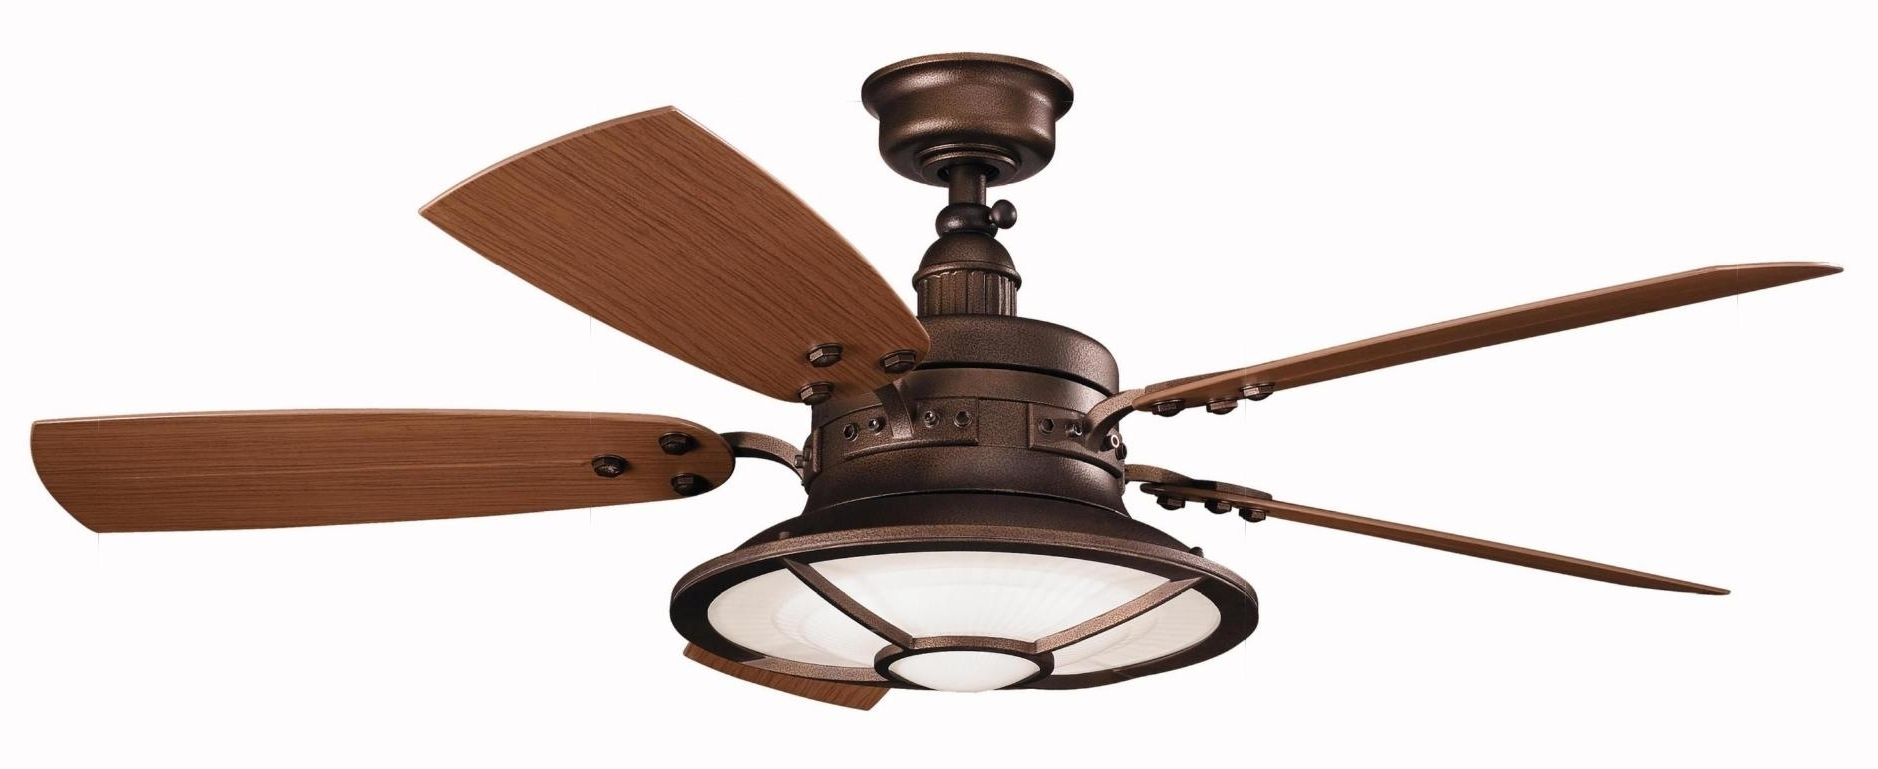 Newest Waterproof Outdoor Ceiling Fans Pertaining To Light : Kichler Fan Led Lighting Ceiling Fans Waterproof Outdoor (View 12 of 20)